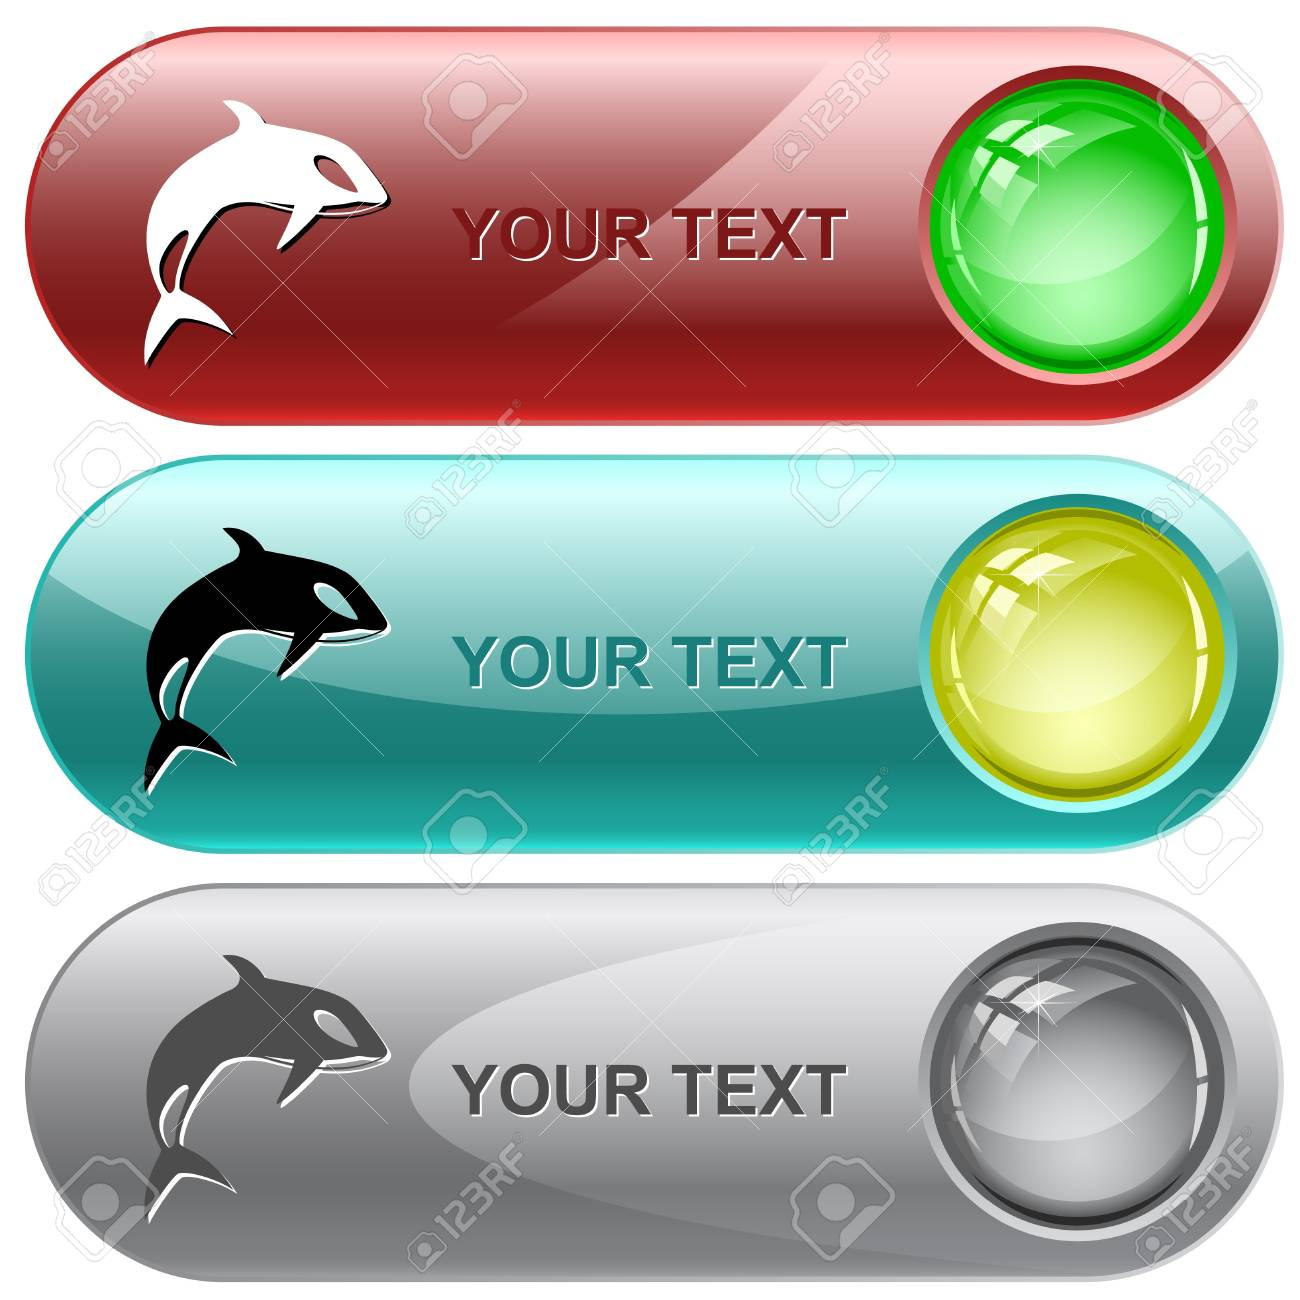 Killer whale. internet buttons. Stock Photo - 8769945